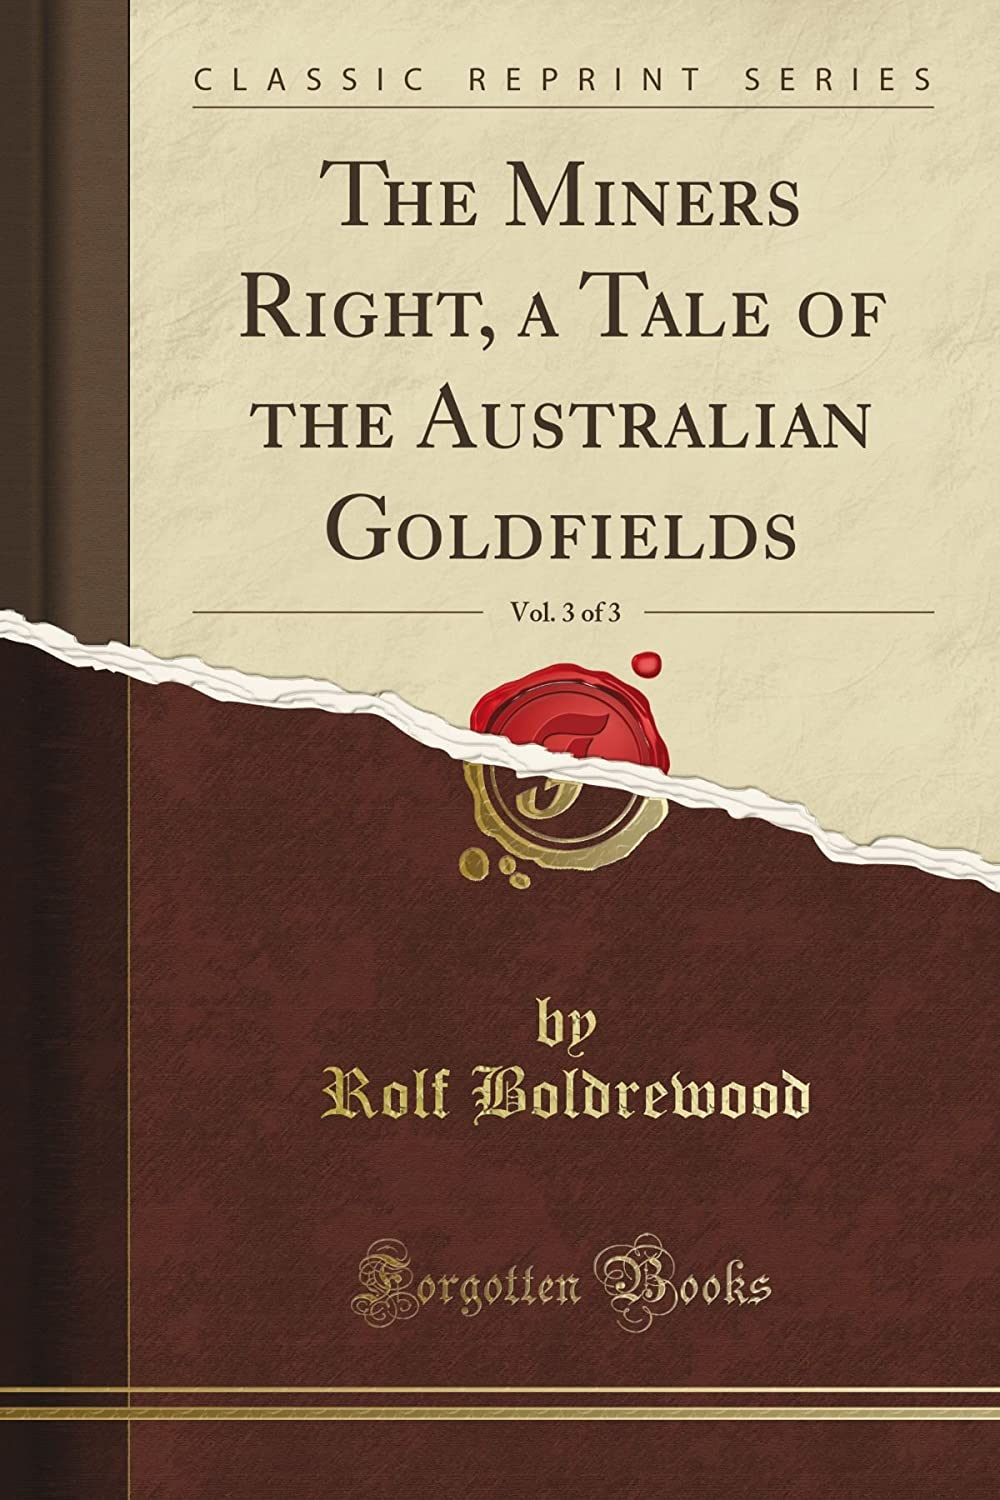 The Miner's Right, a Tale of the Australian Goldfields, Vol. 3 of 3 (Classic Reprint)